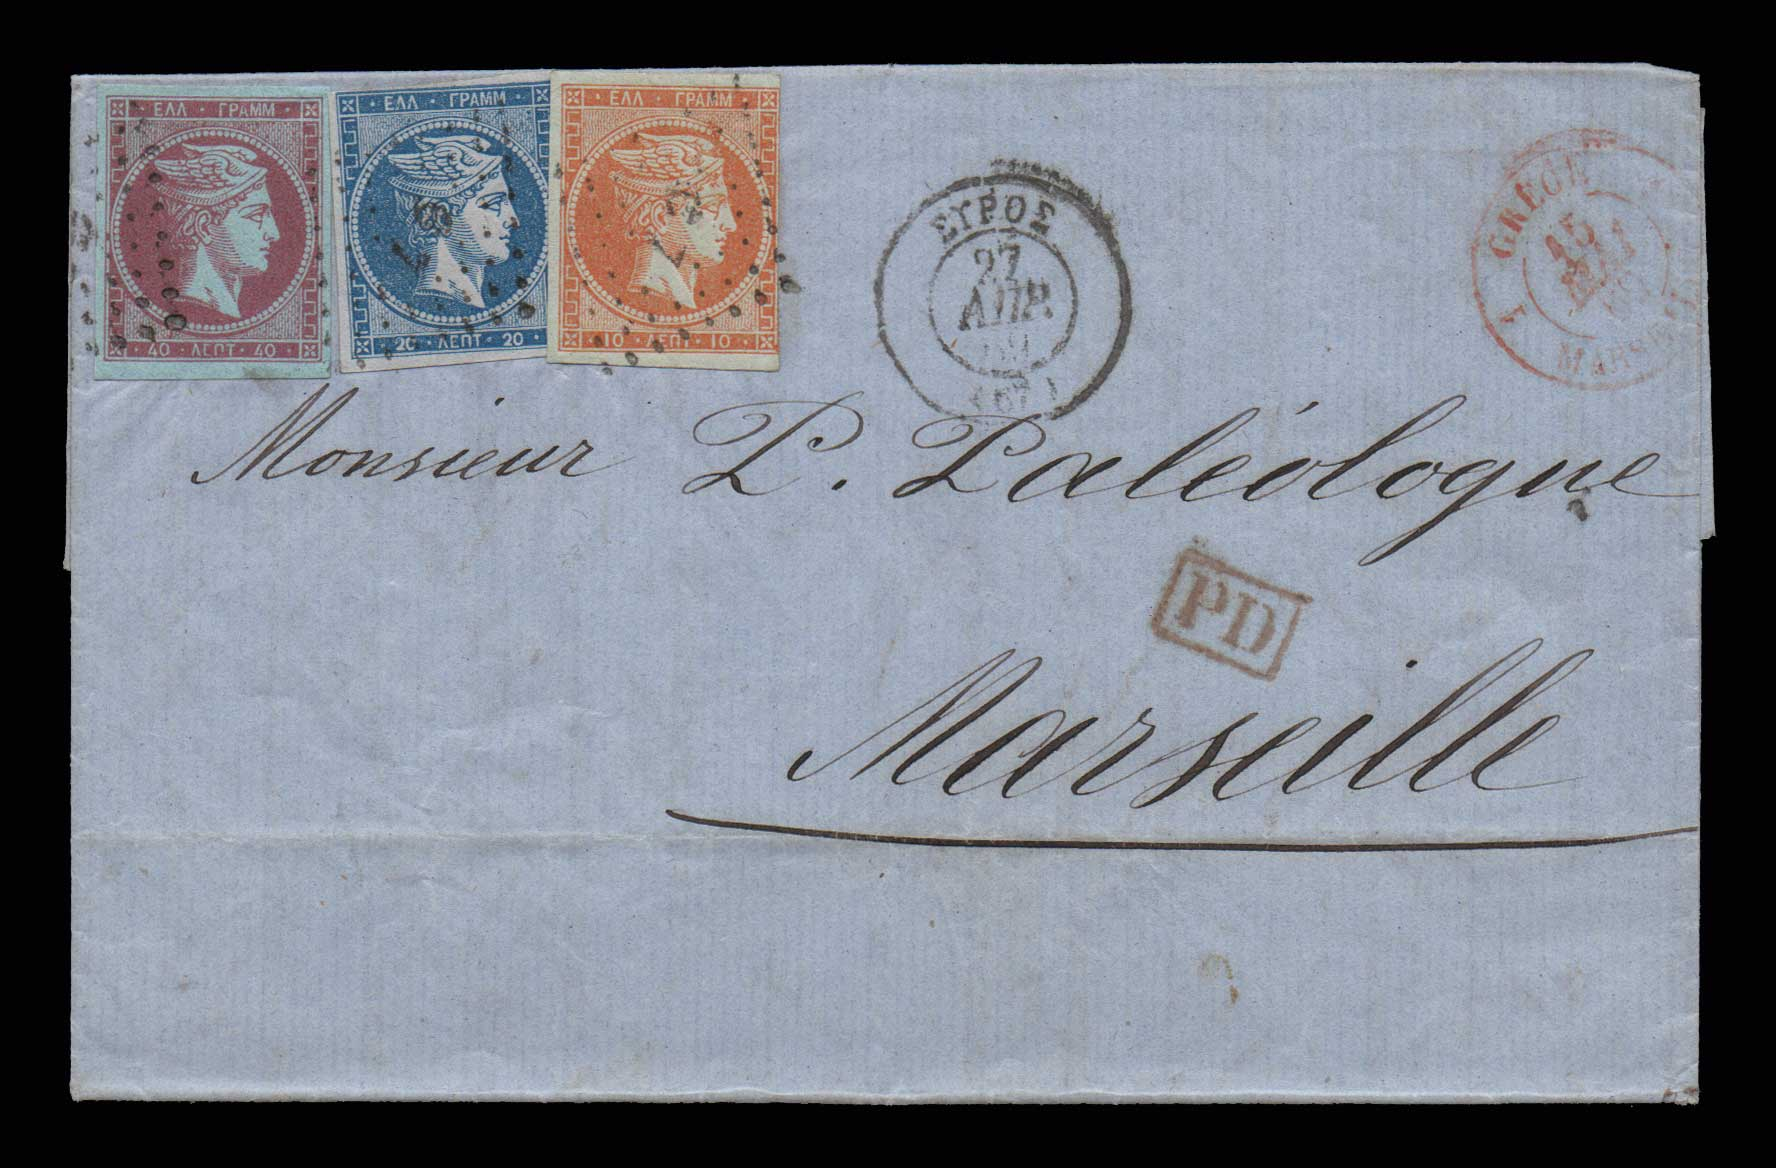 Lot 228 - -  LARGE HERMES HEAD 1867/1869 cleaned plates. -  Athens Auctions Public Auction 74 General Stamp Sale